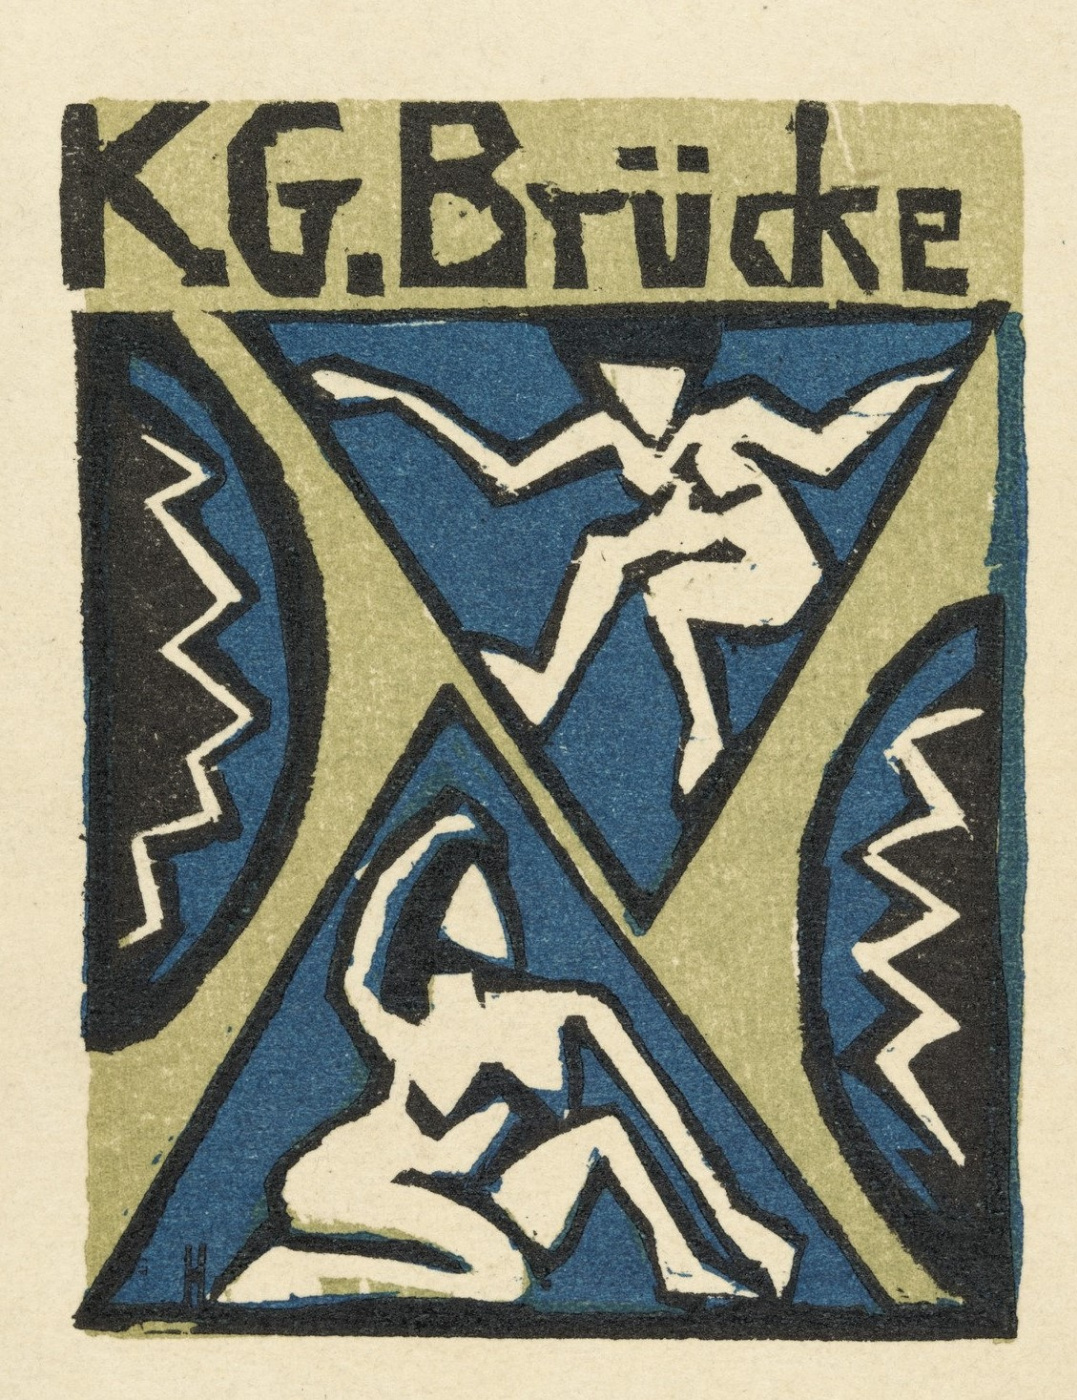 """Erich Heckel. The cover of the invitation to the group exhibition of artists """"Bridge"""" in the gallery of Fritz Gurlitt"""